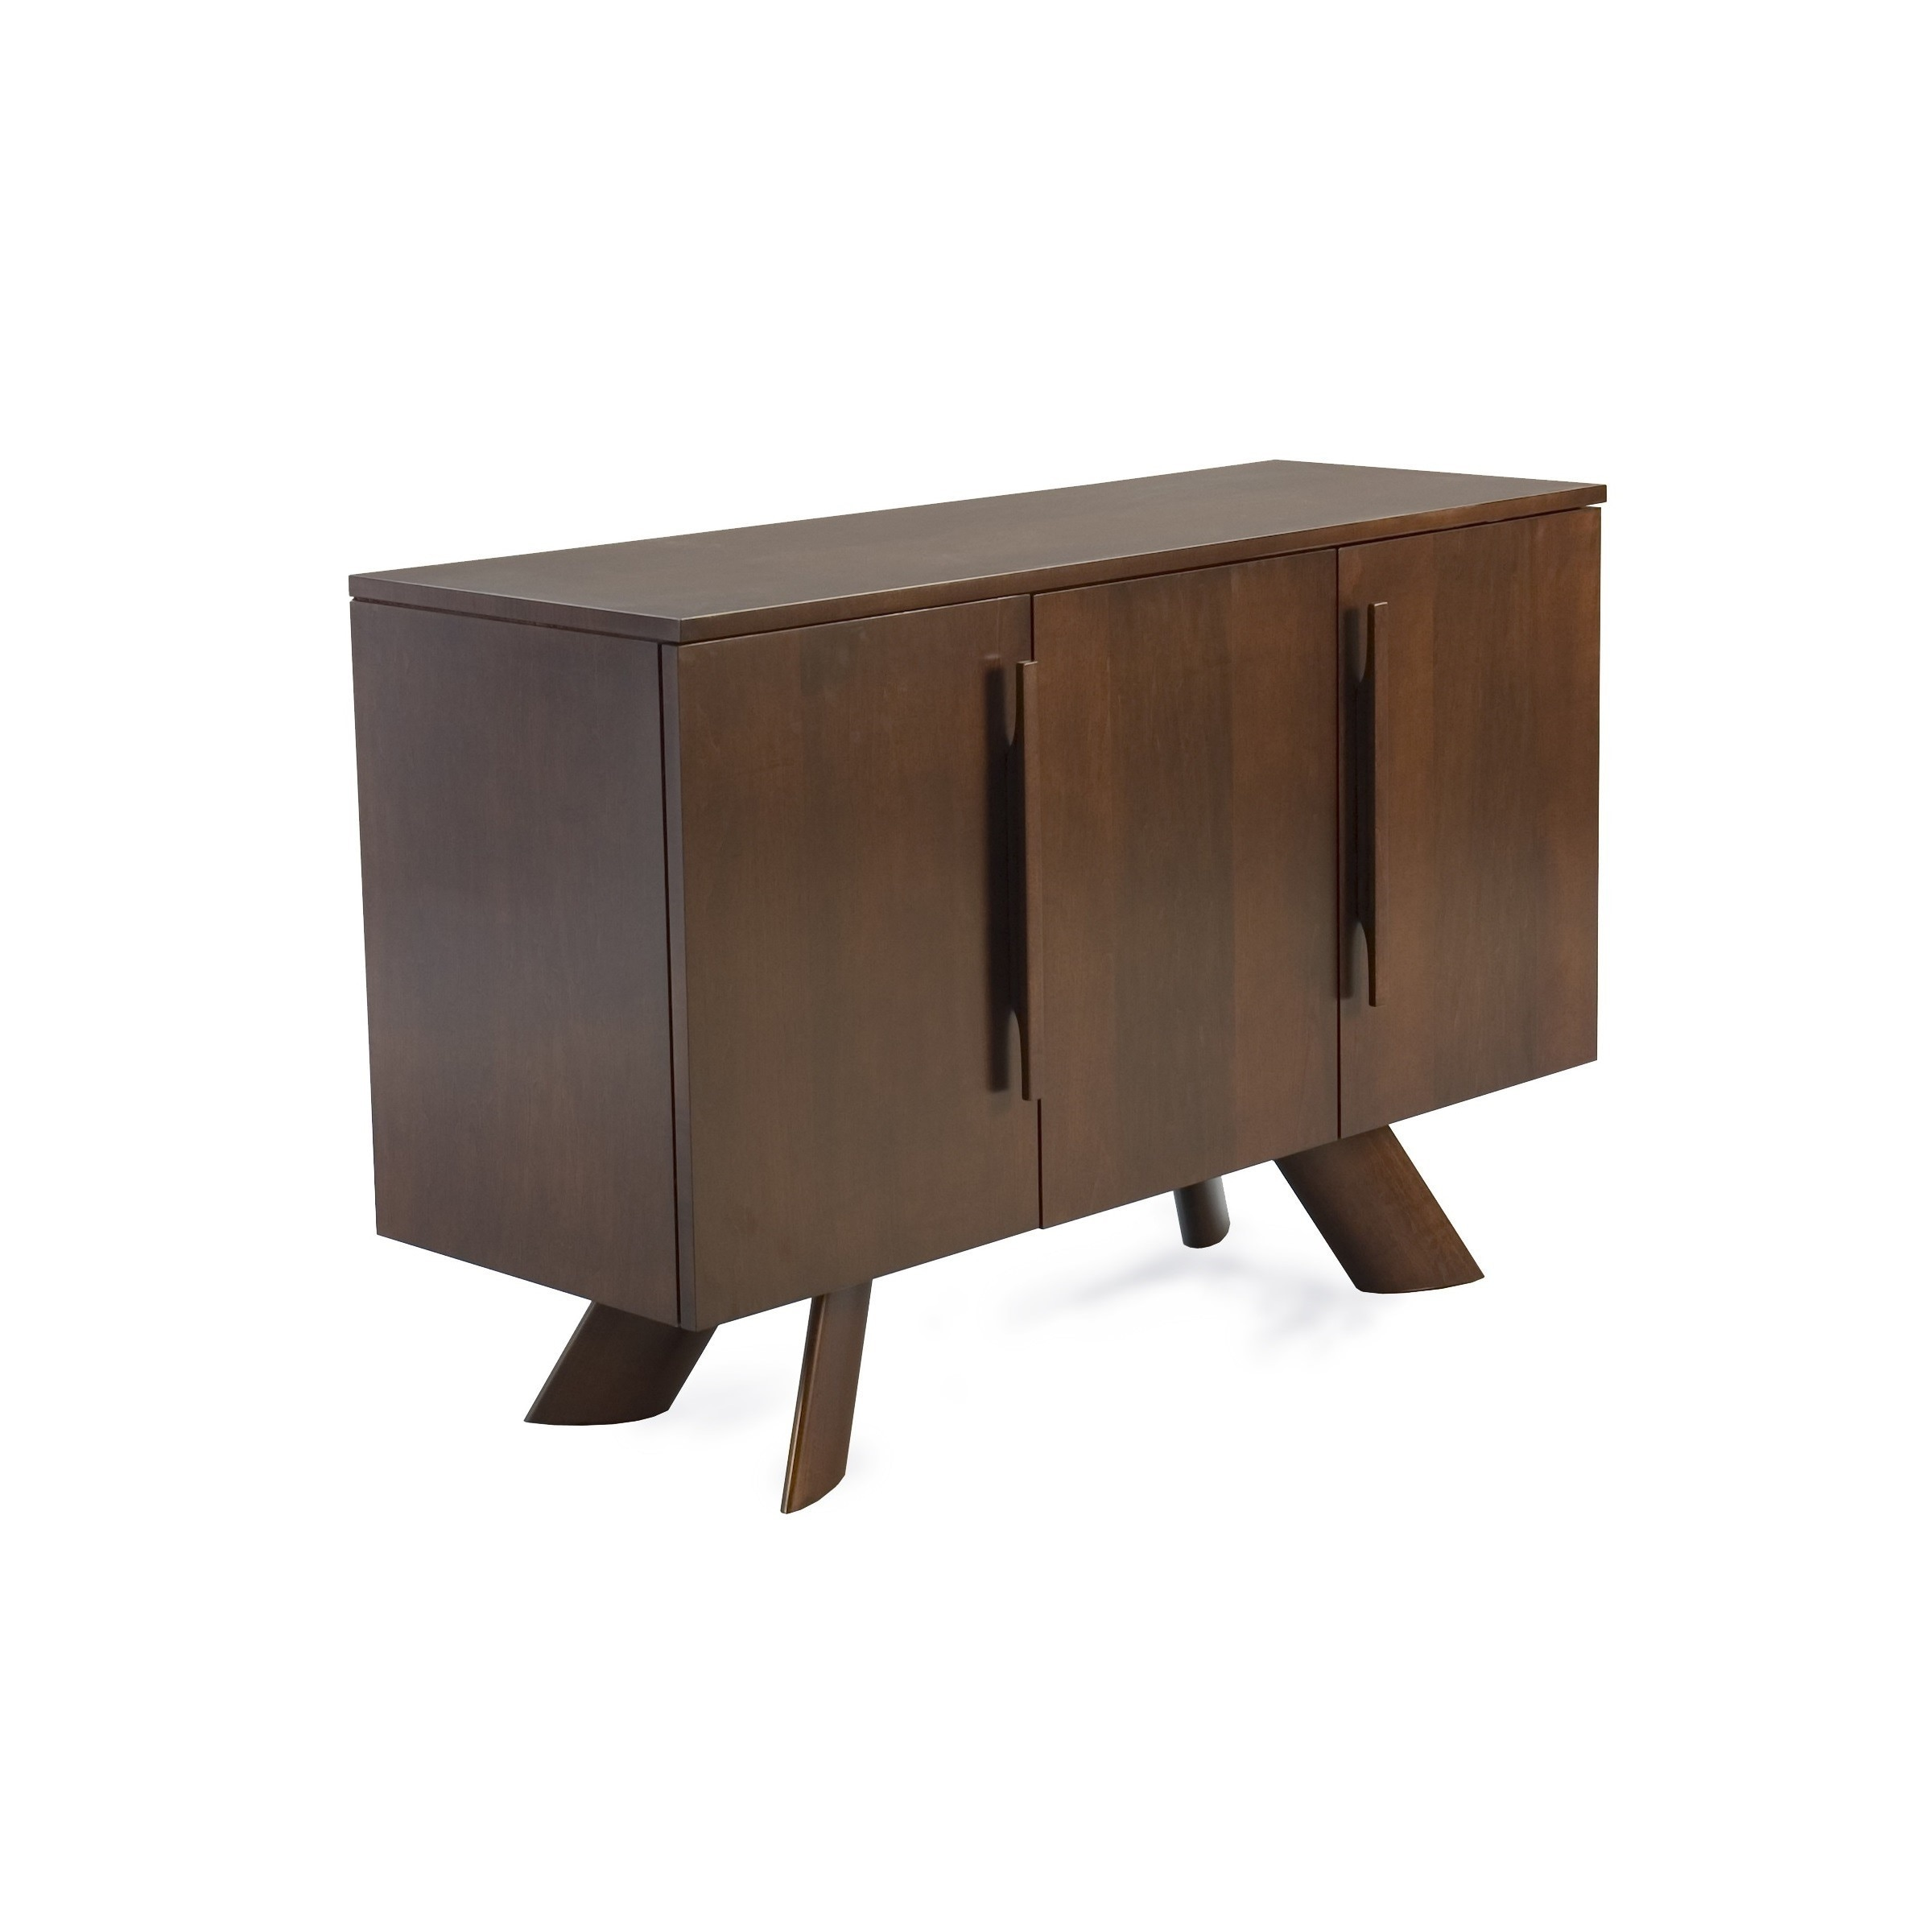 Saloom 3 door maple chocolate custom buffet with k base foot free shipping today overstock 19243869